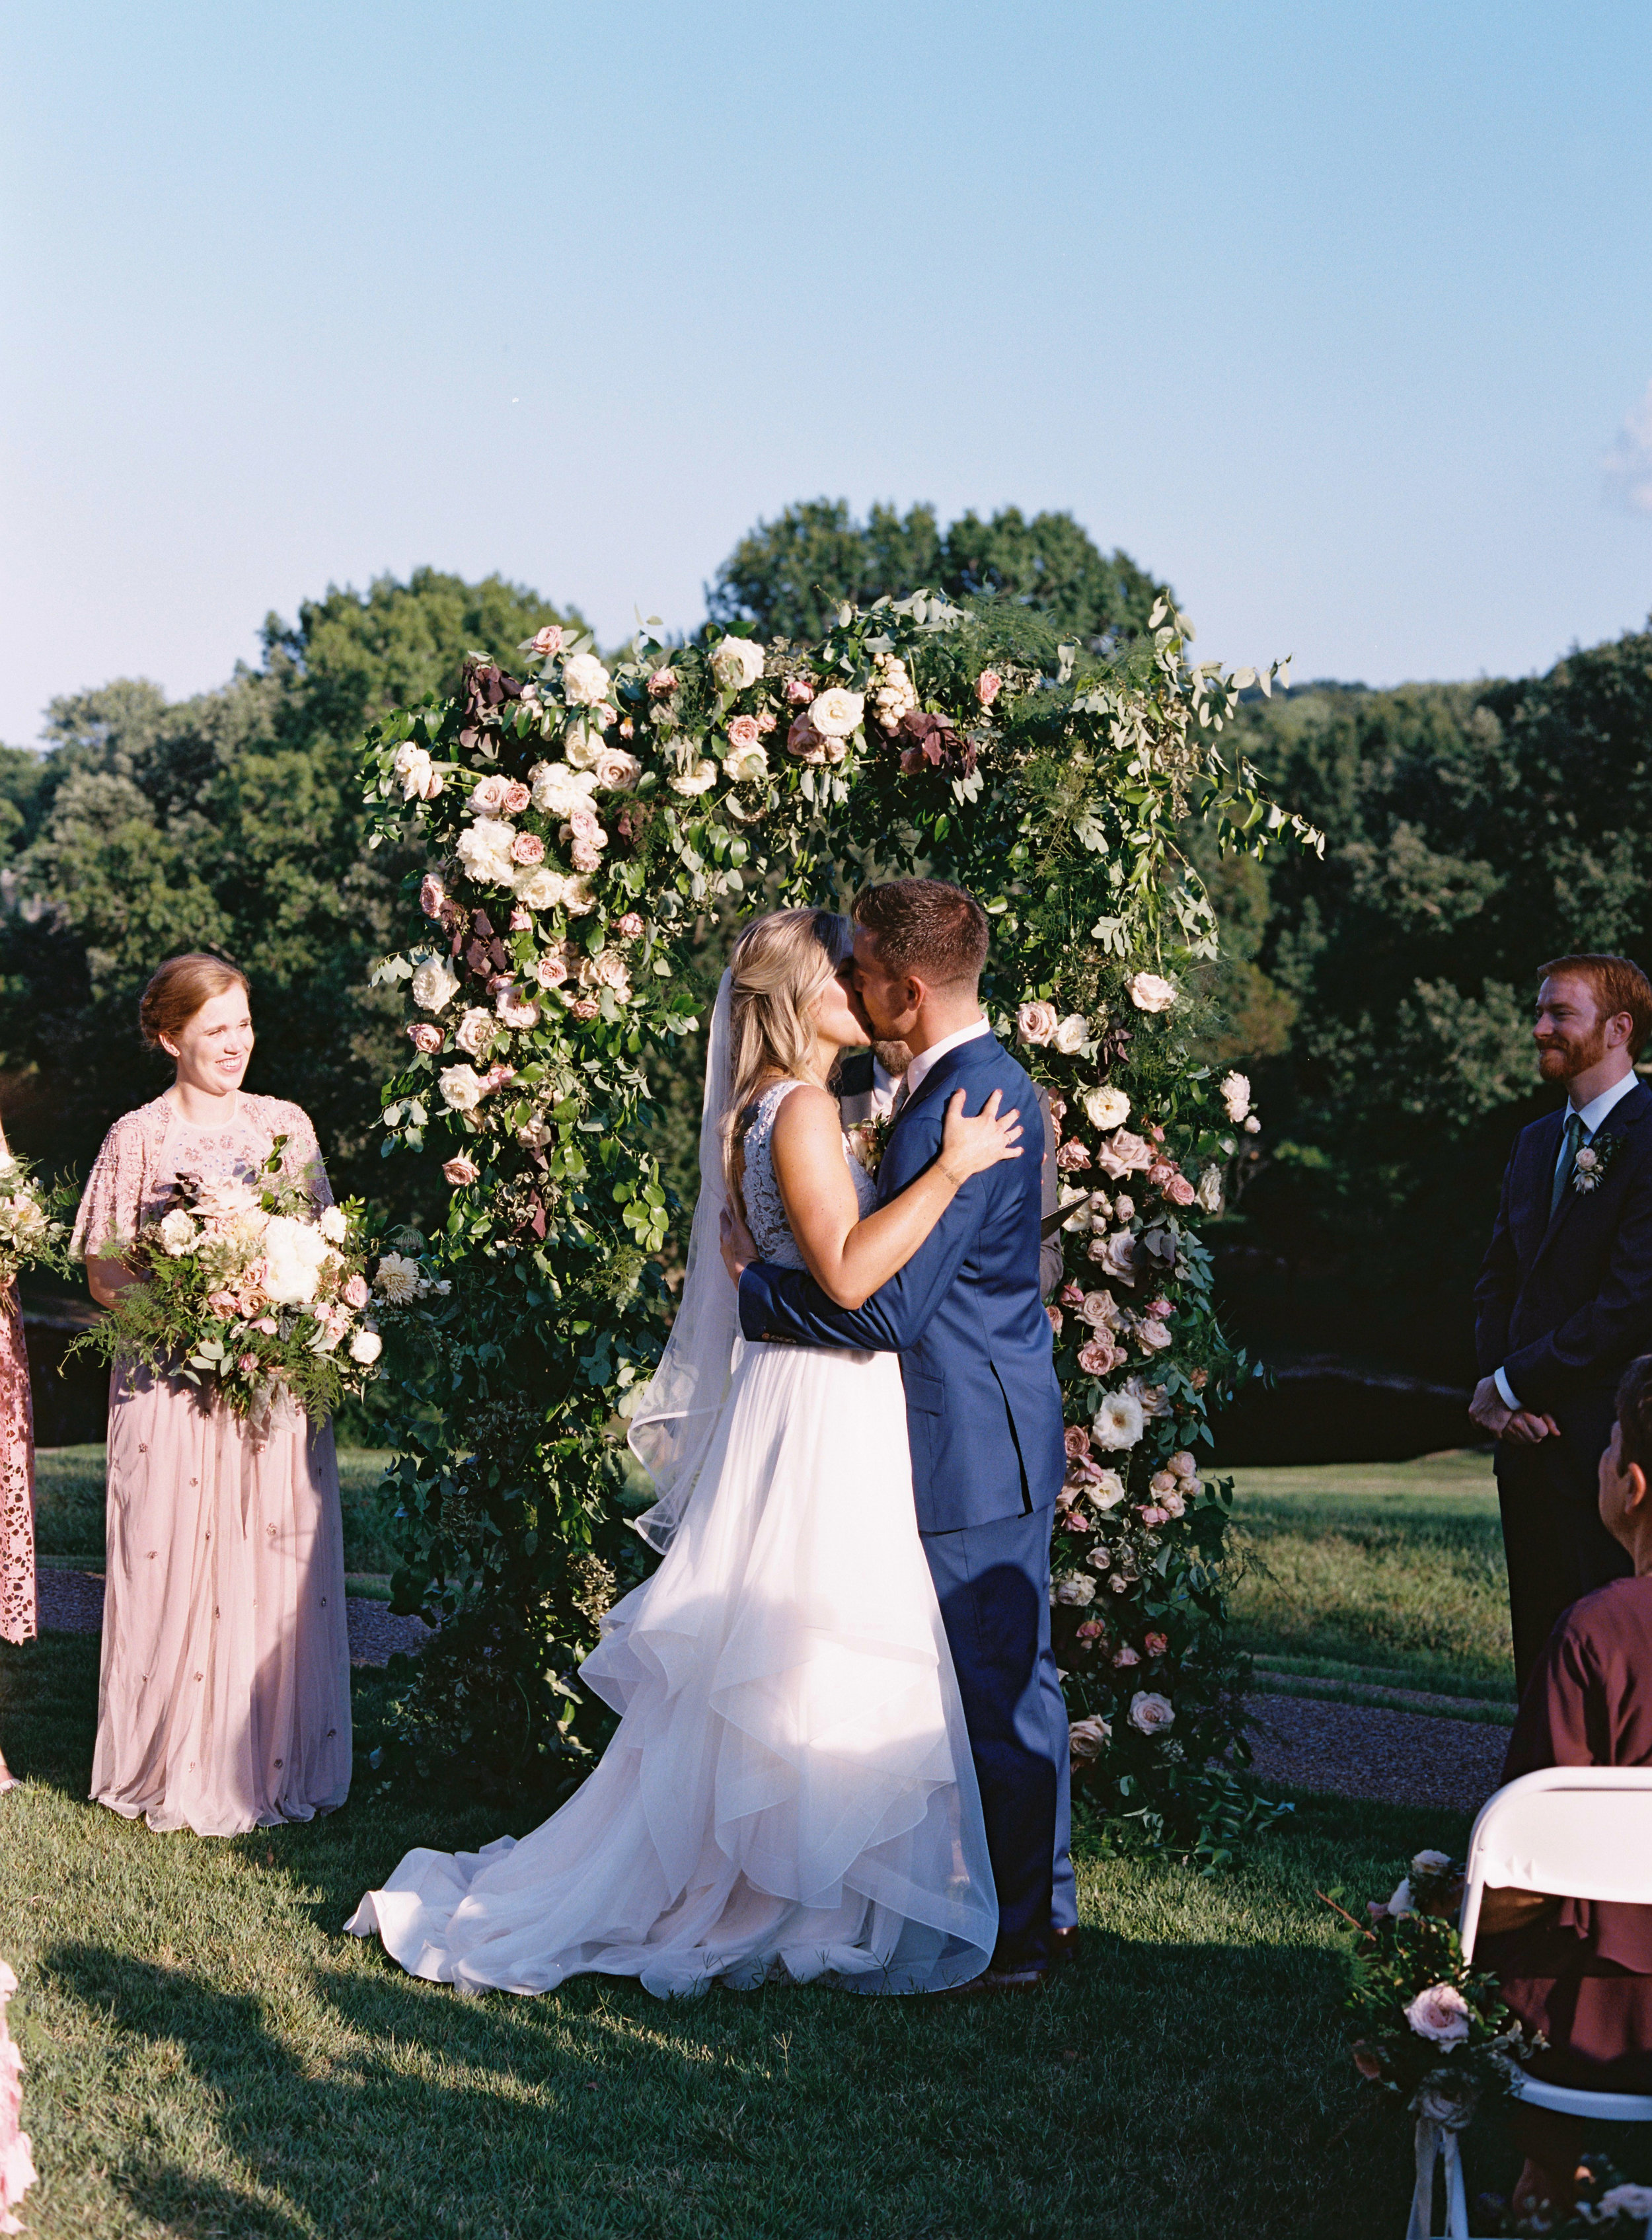 Natural floral arch with blush and neutral garden roses and greenery // Southern Wedding Floral Designer